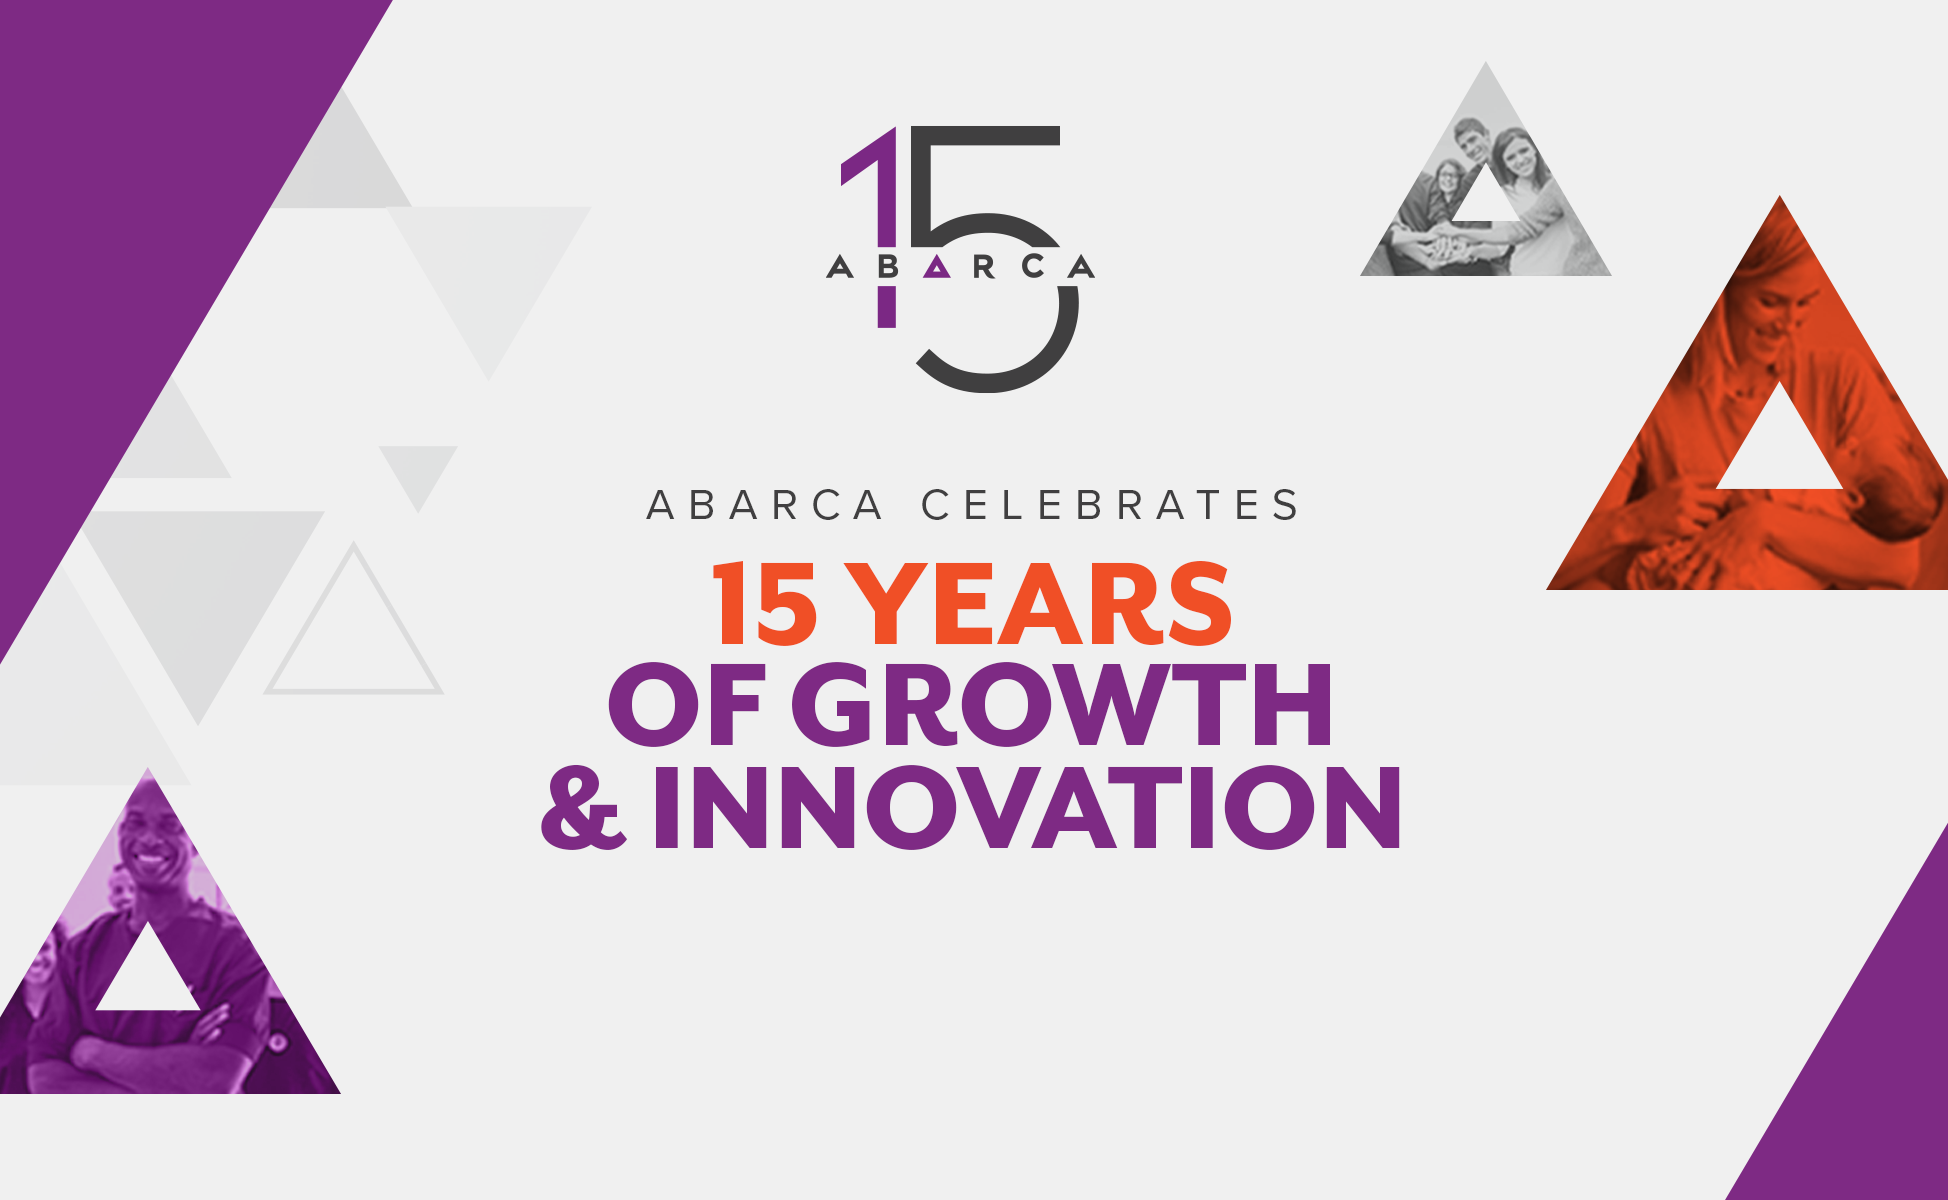 Abarca celebrates 15 years of growth and innovation